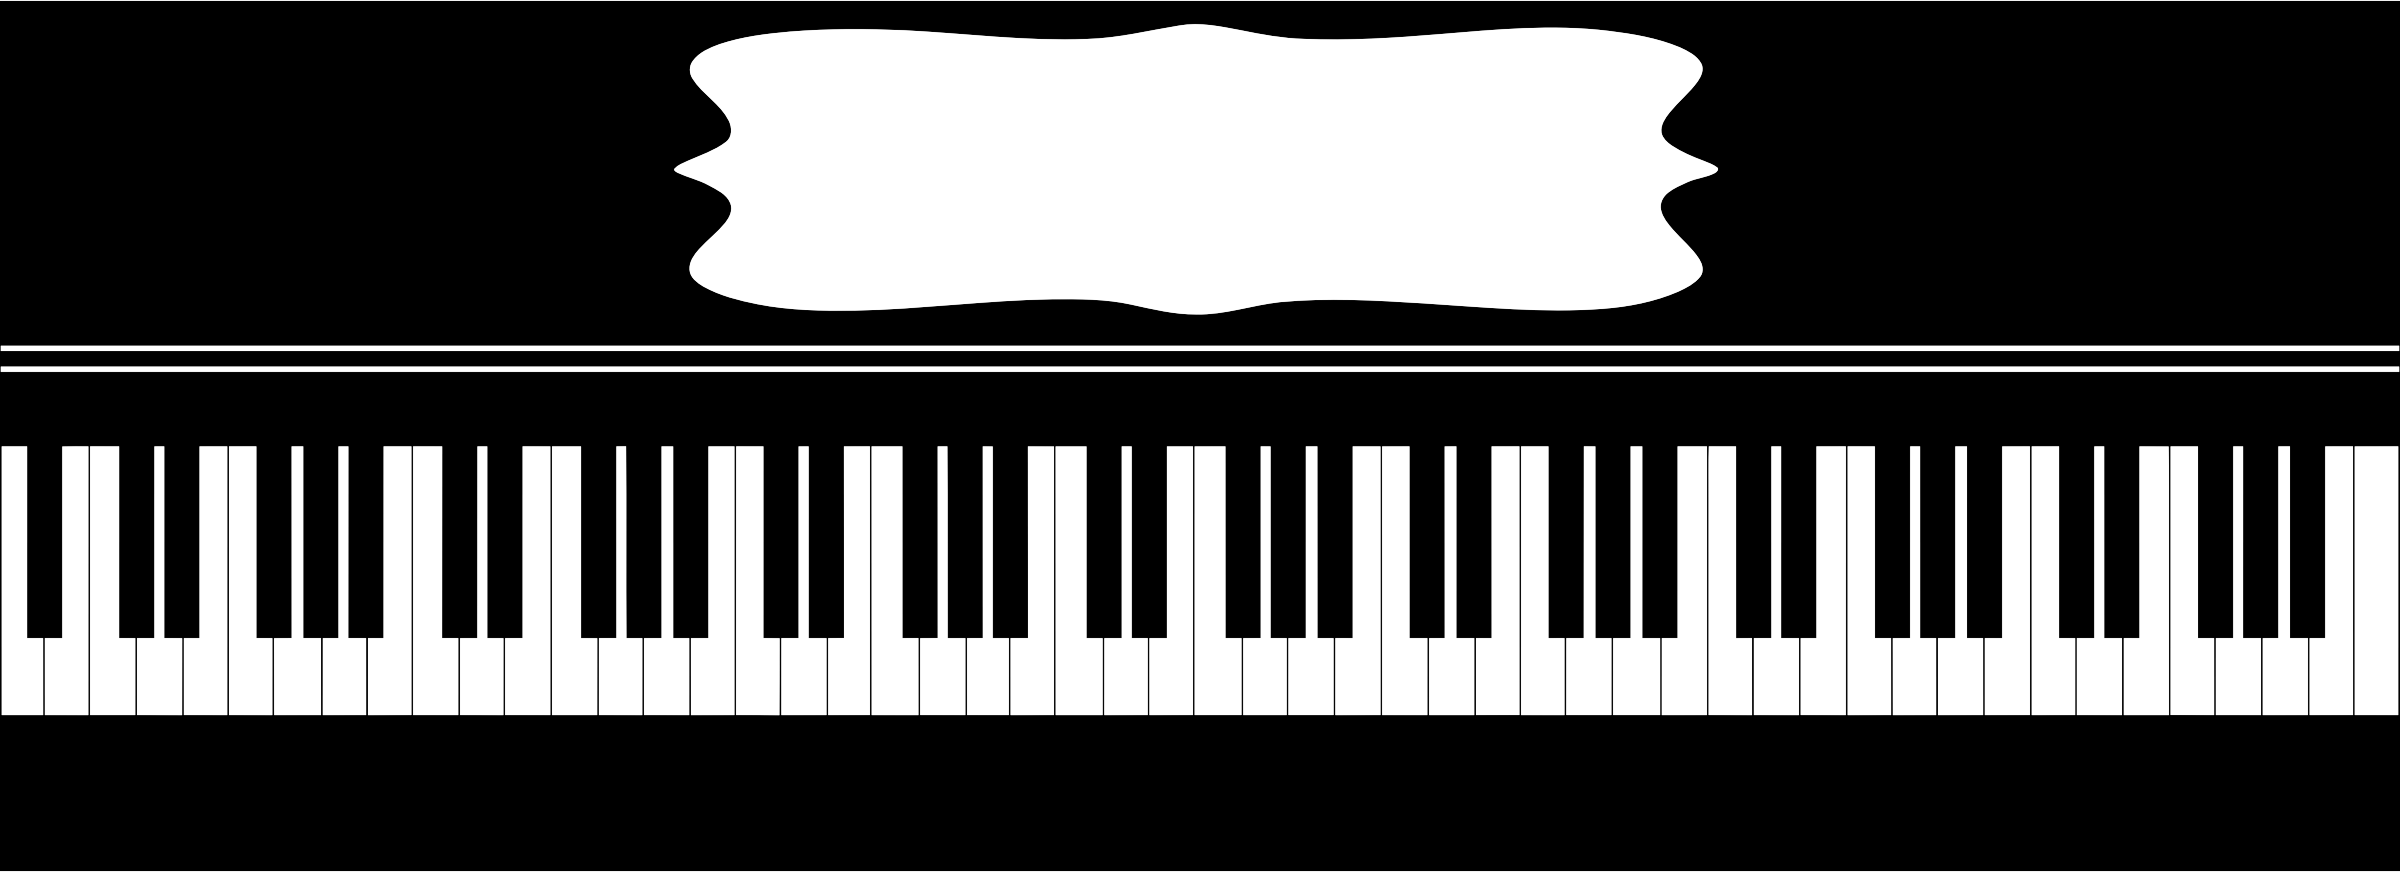 Free frames cliparts download. Clipart piano frame